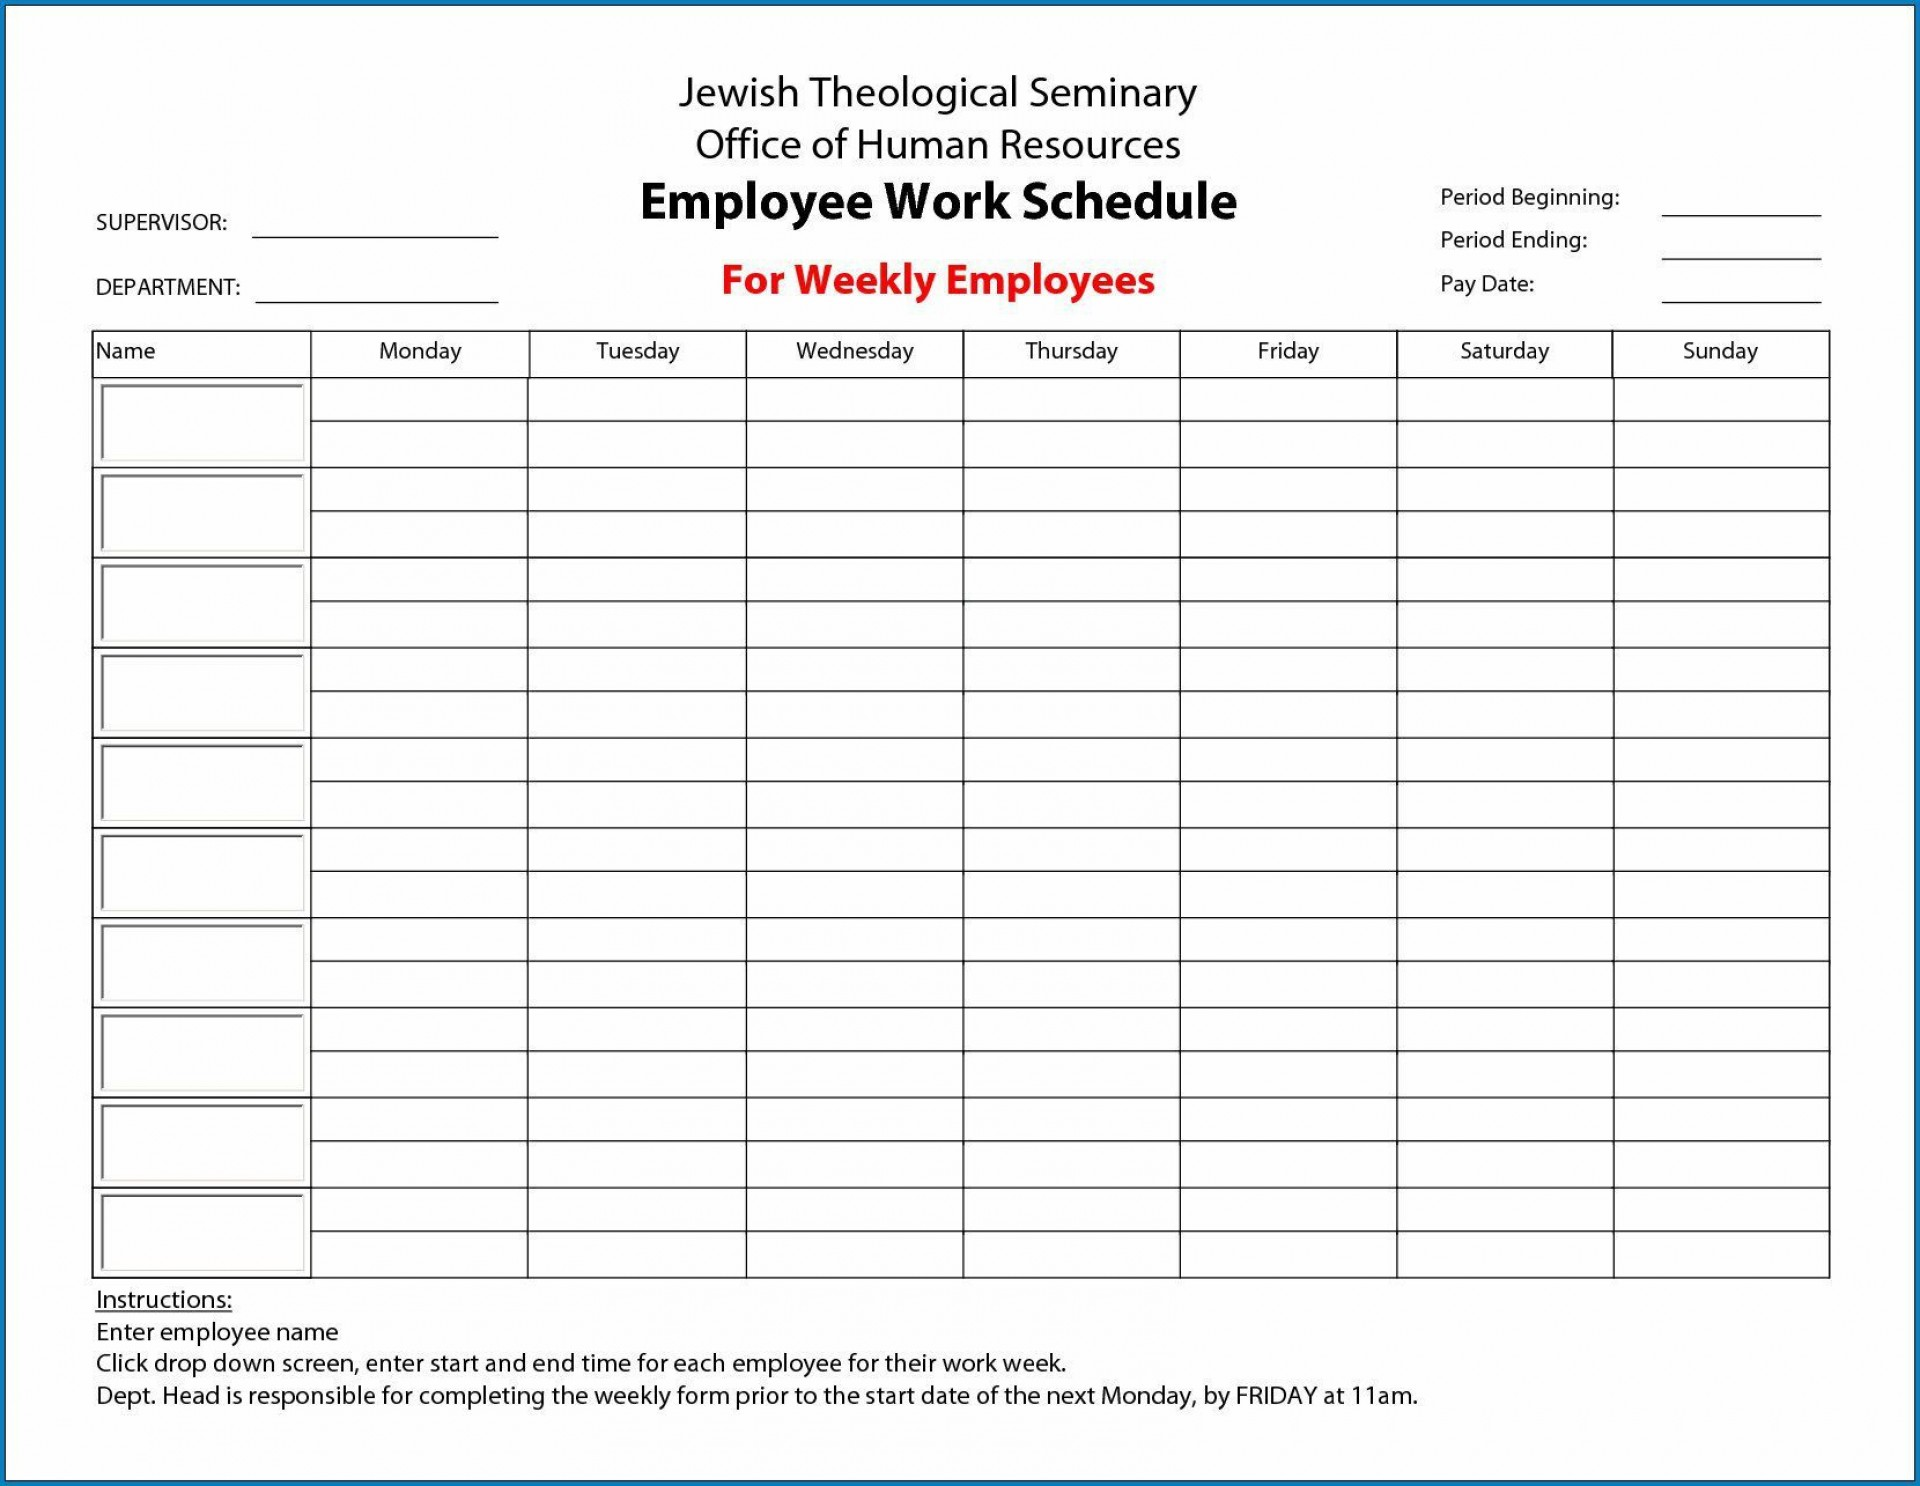 000 Imposing Free Employee Scheduling Template Highest Quality  Templates Weekly Work Schedule Printable Training Plan Excel1920